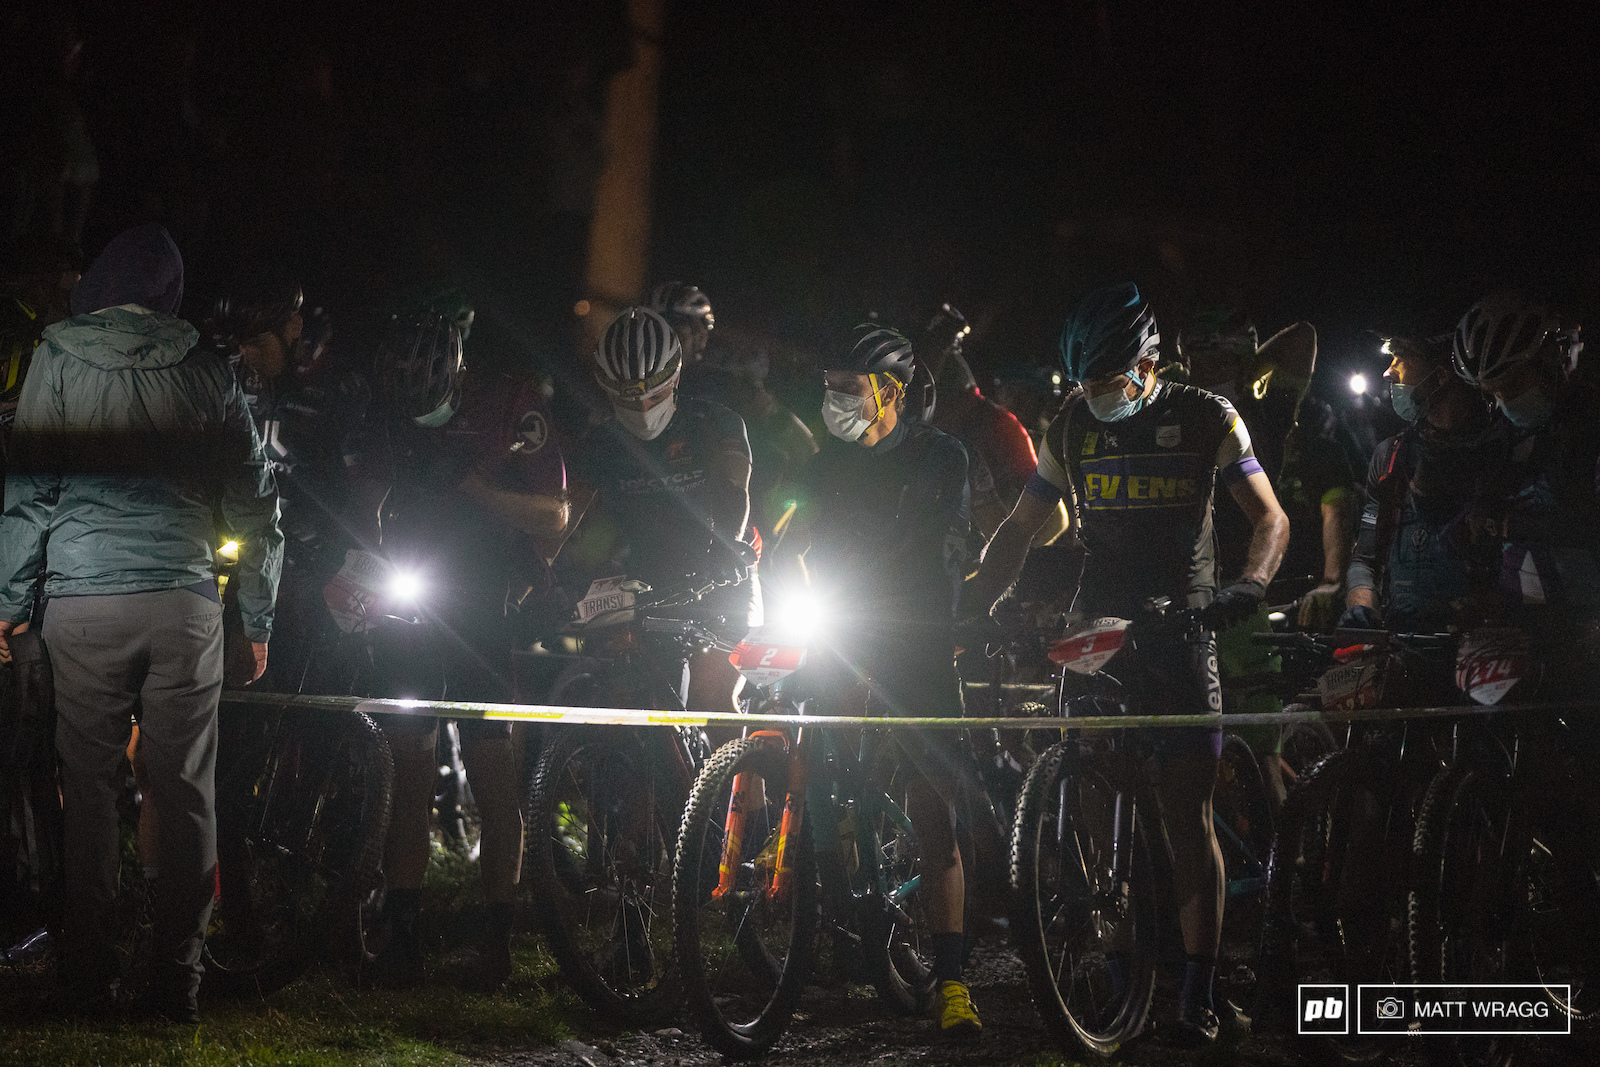 It looked like a nervous wait on the start line.